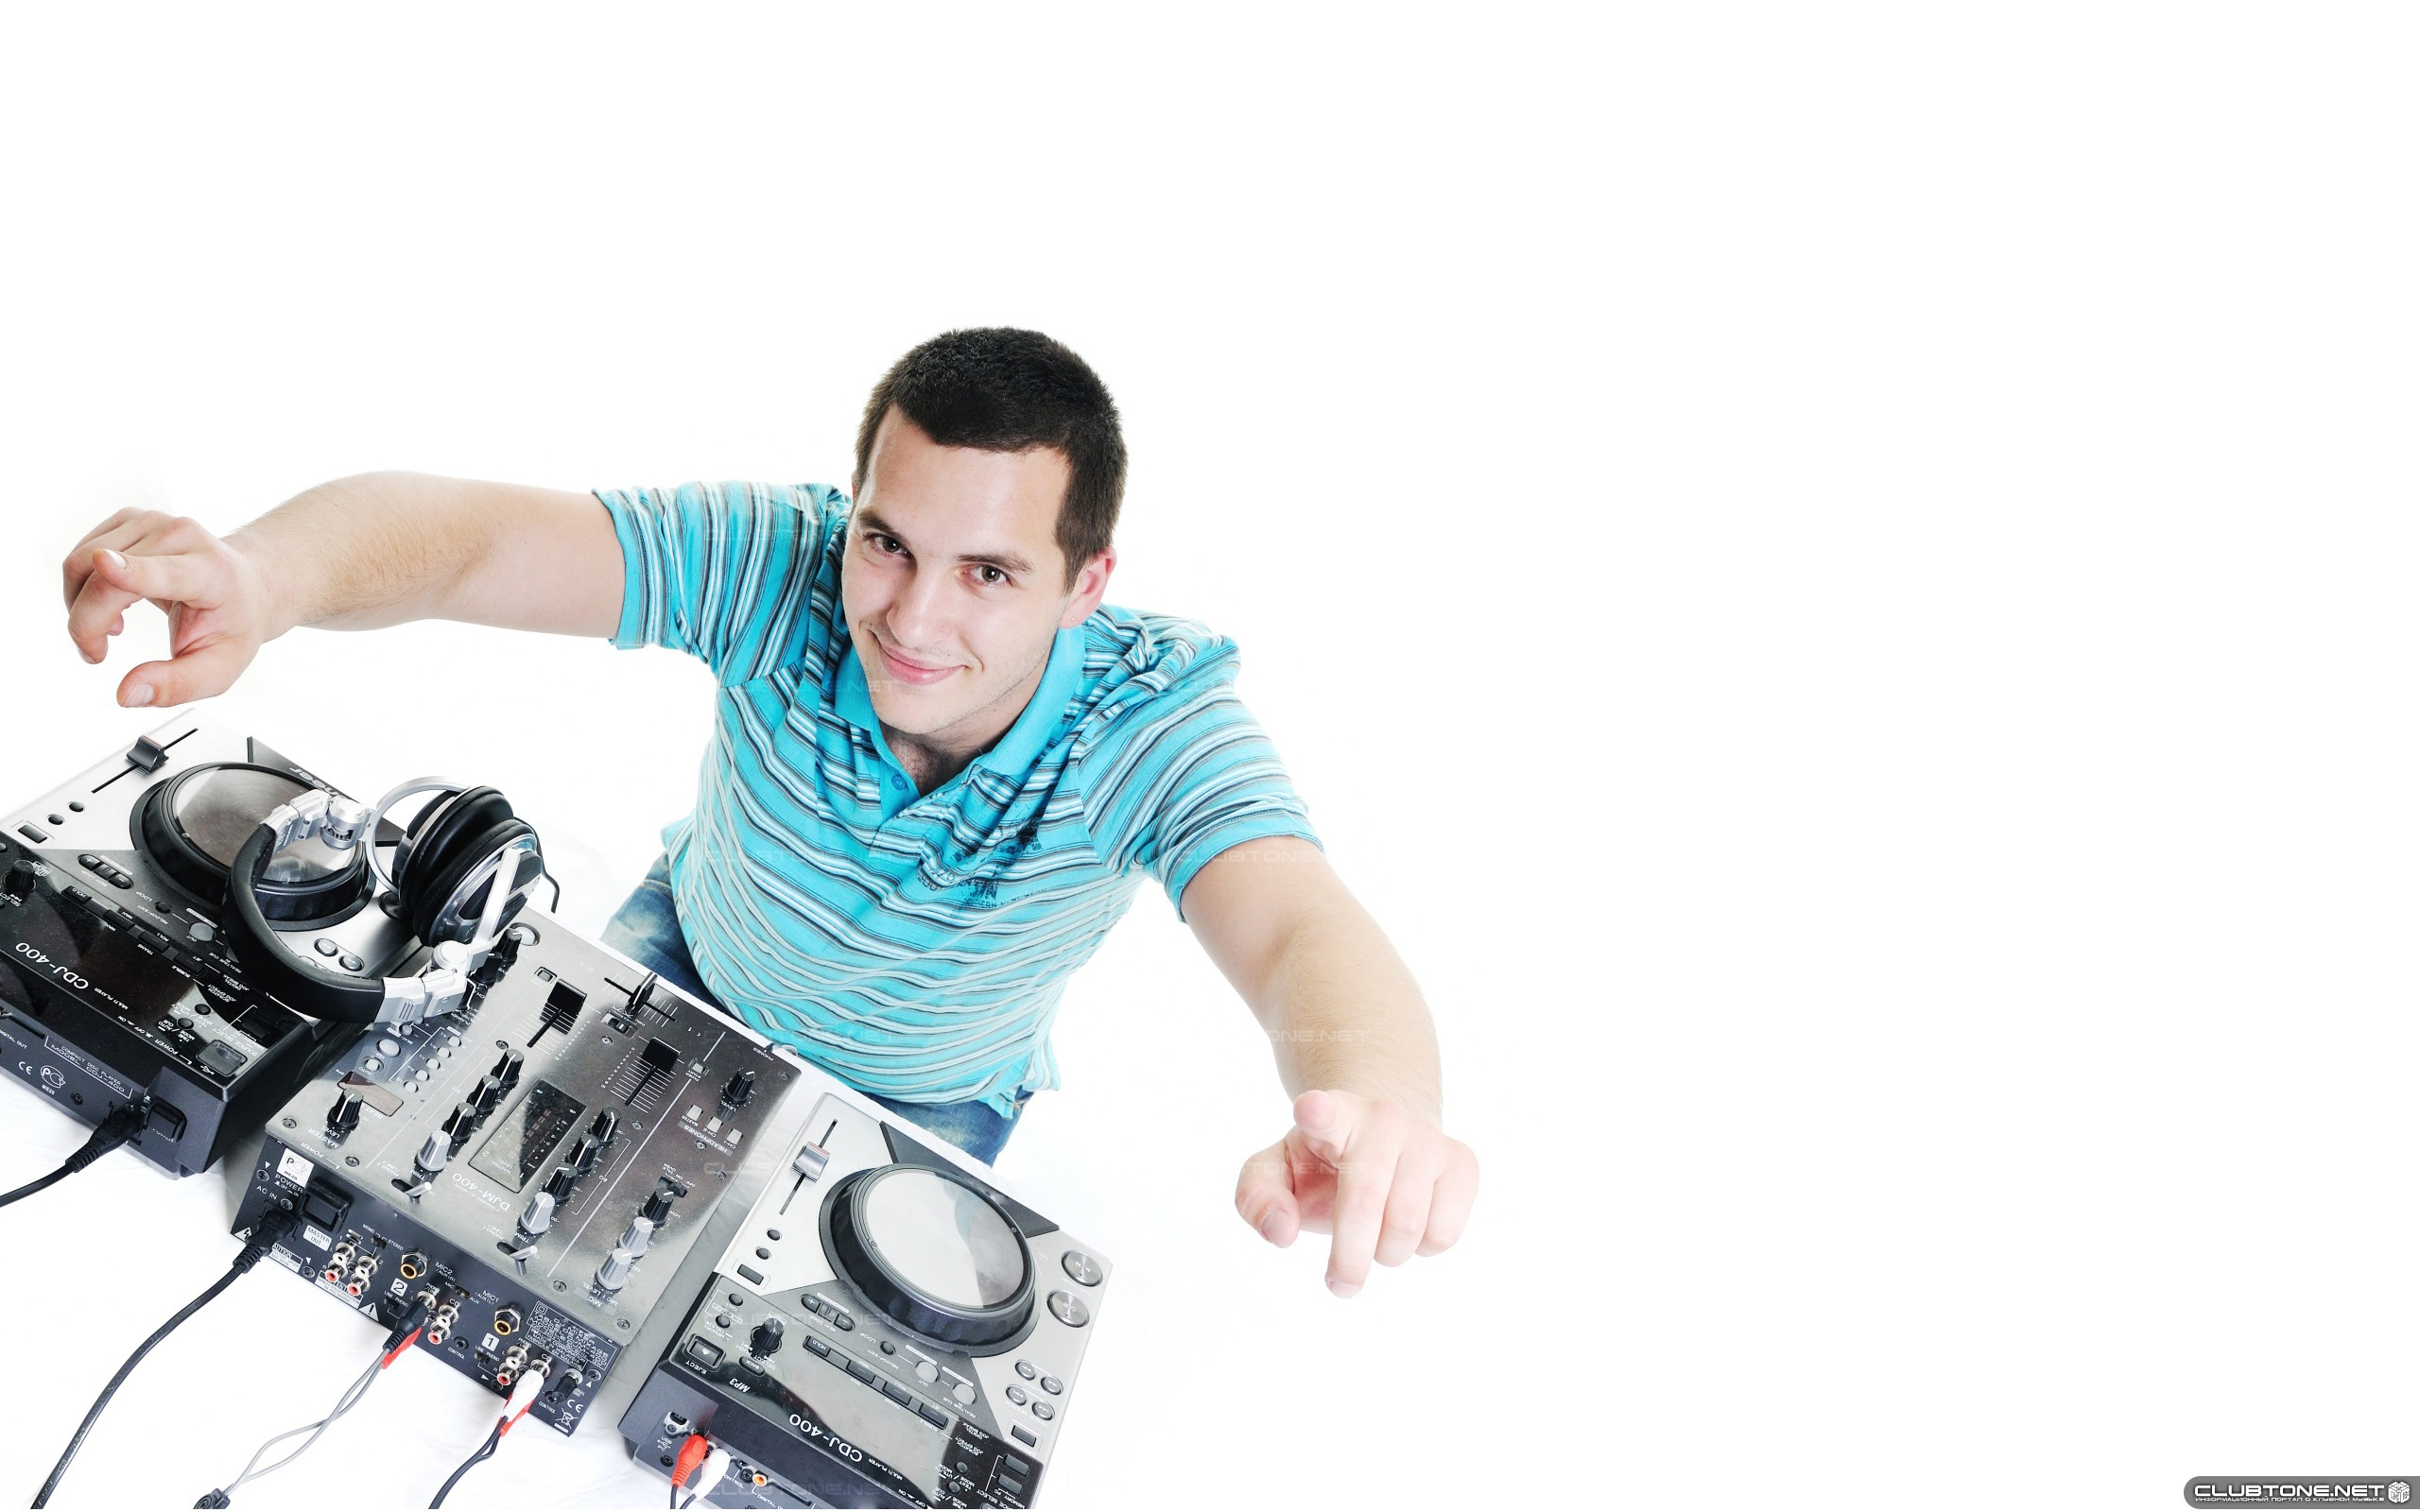 DJ on a white background